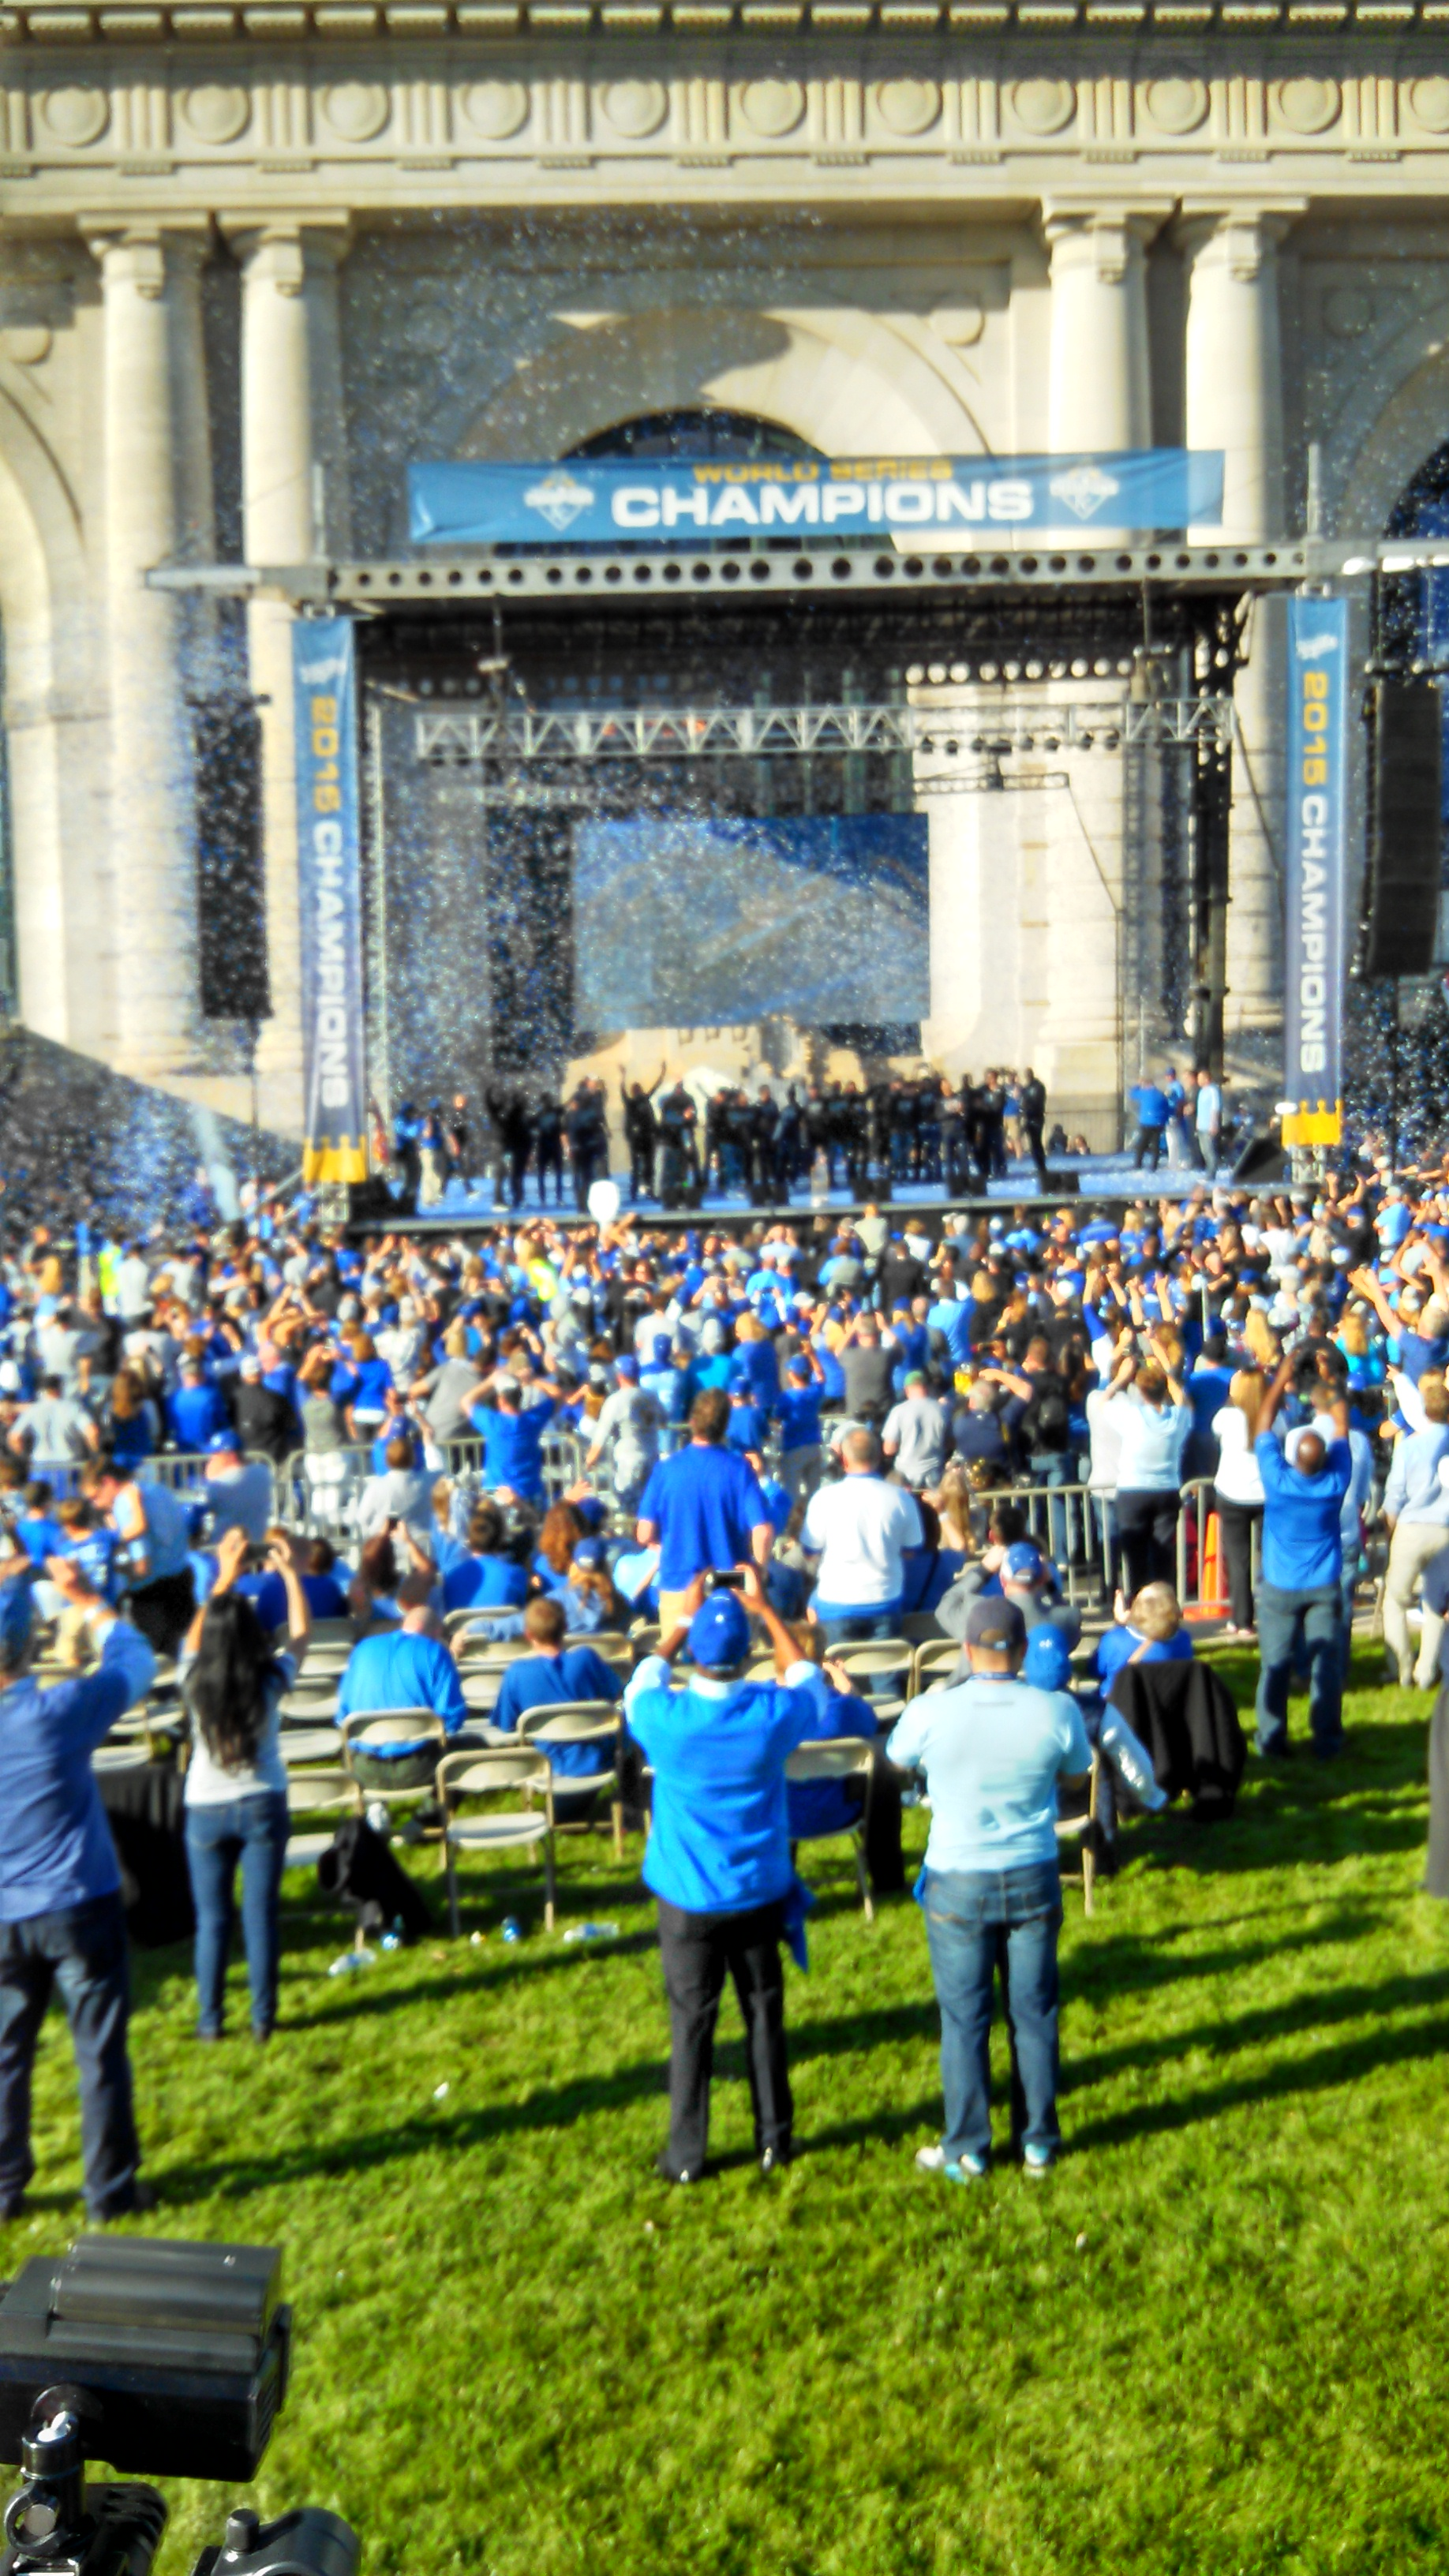 The Royals team on the rally stage. (Photo by Greg Echlin)